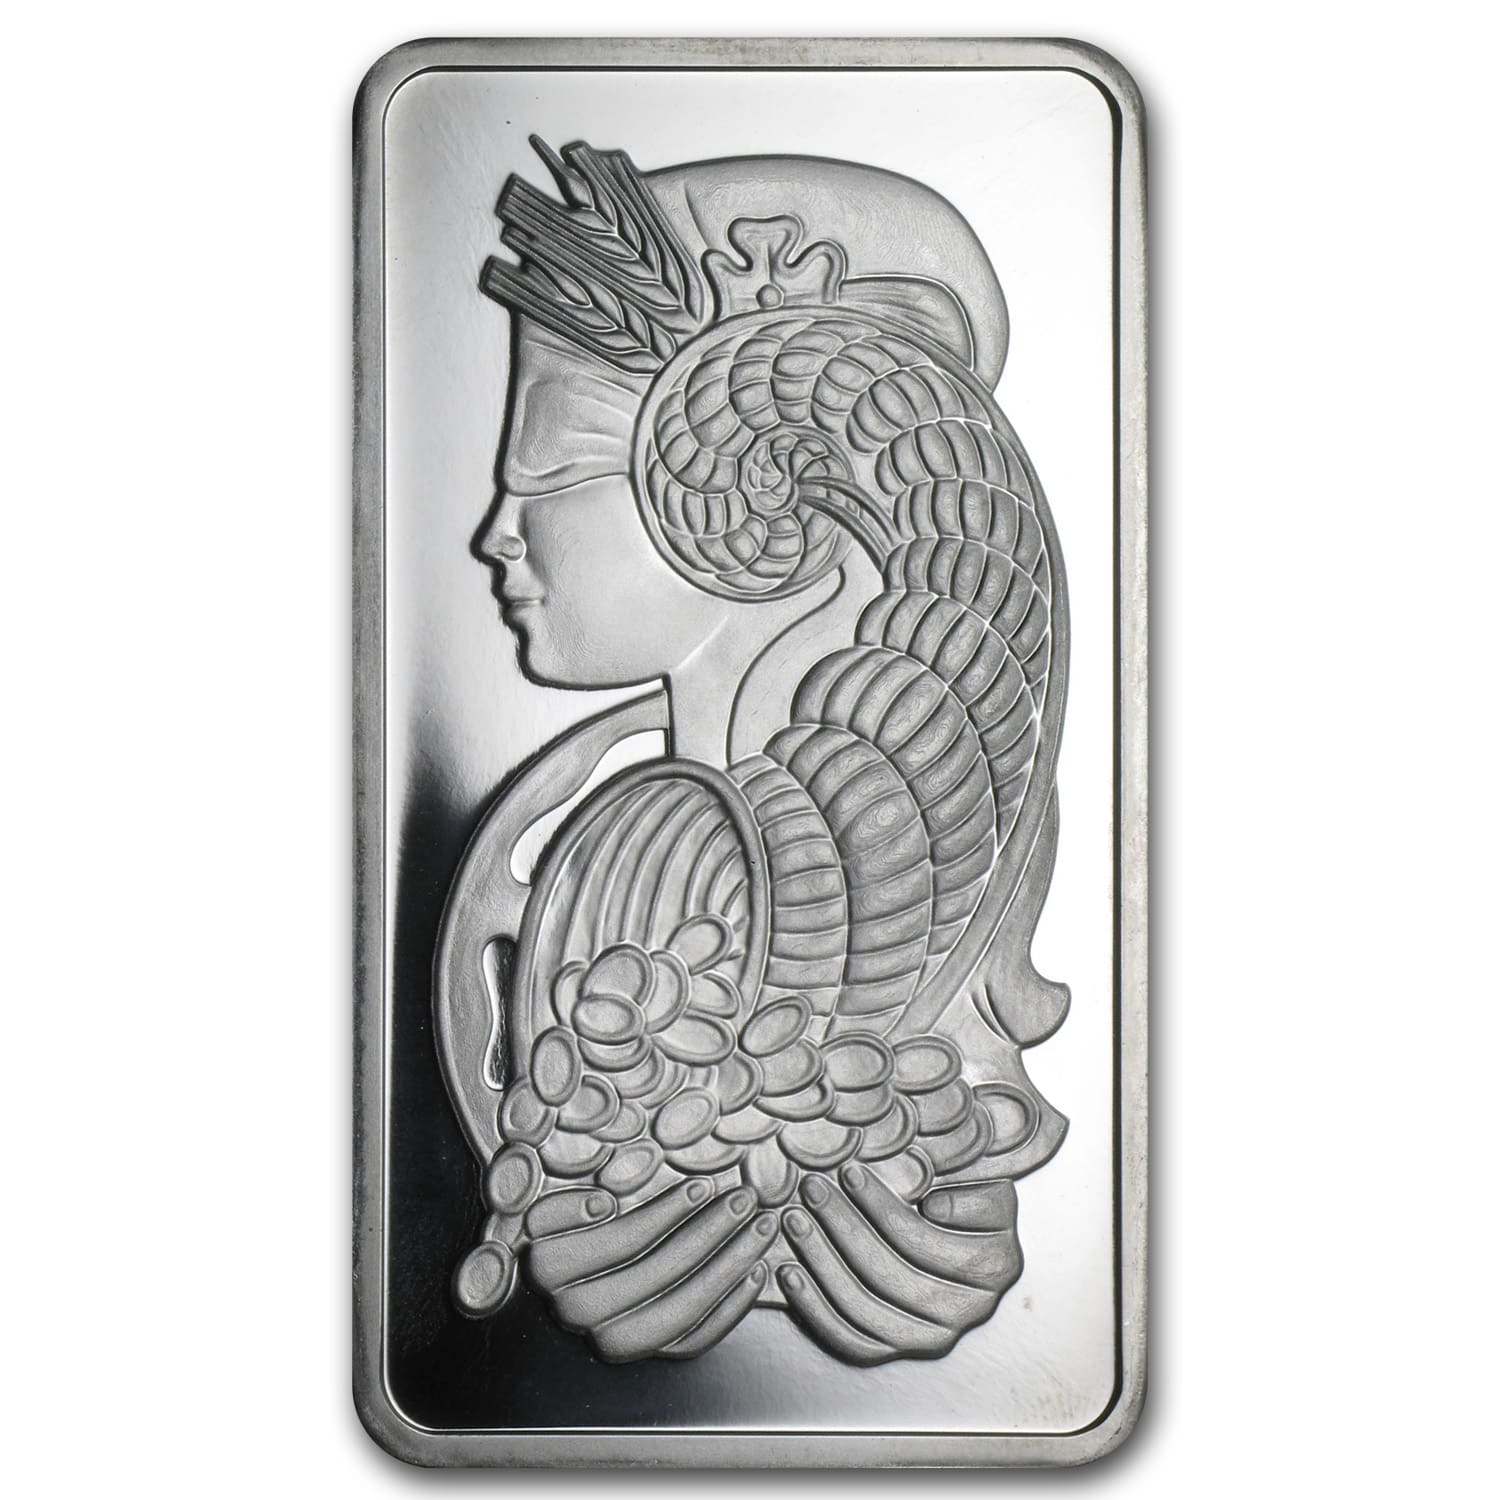 10 oz Platinum Bar (Secondary Market) .999+ Fine